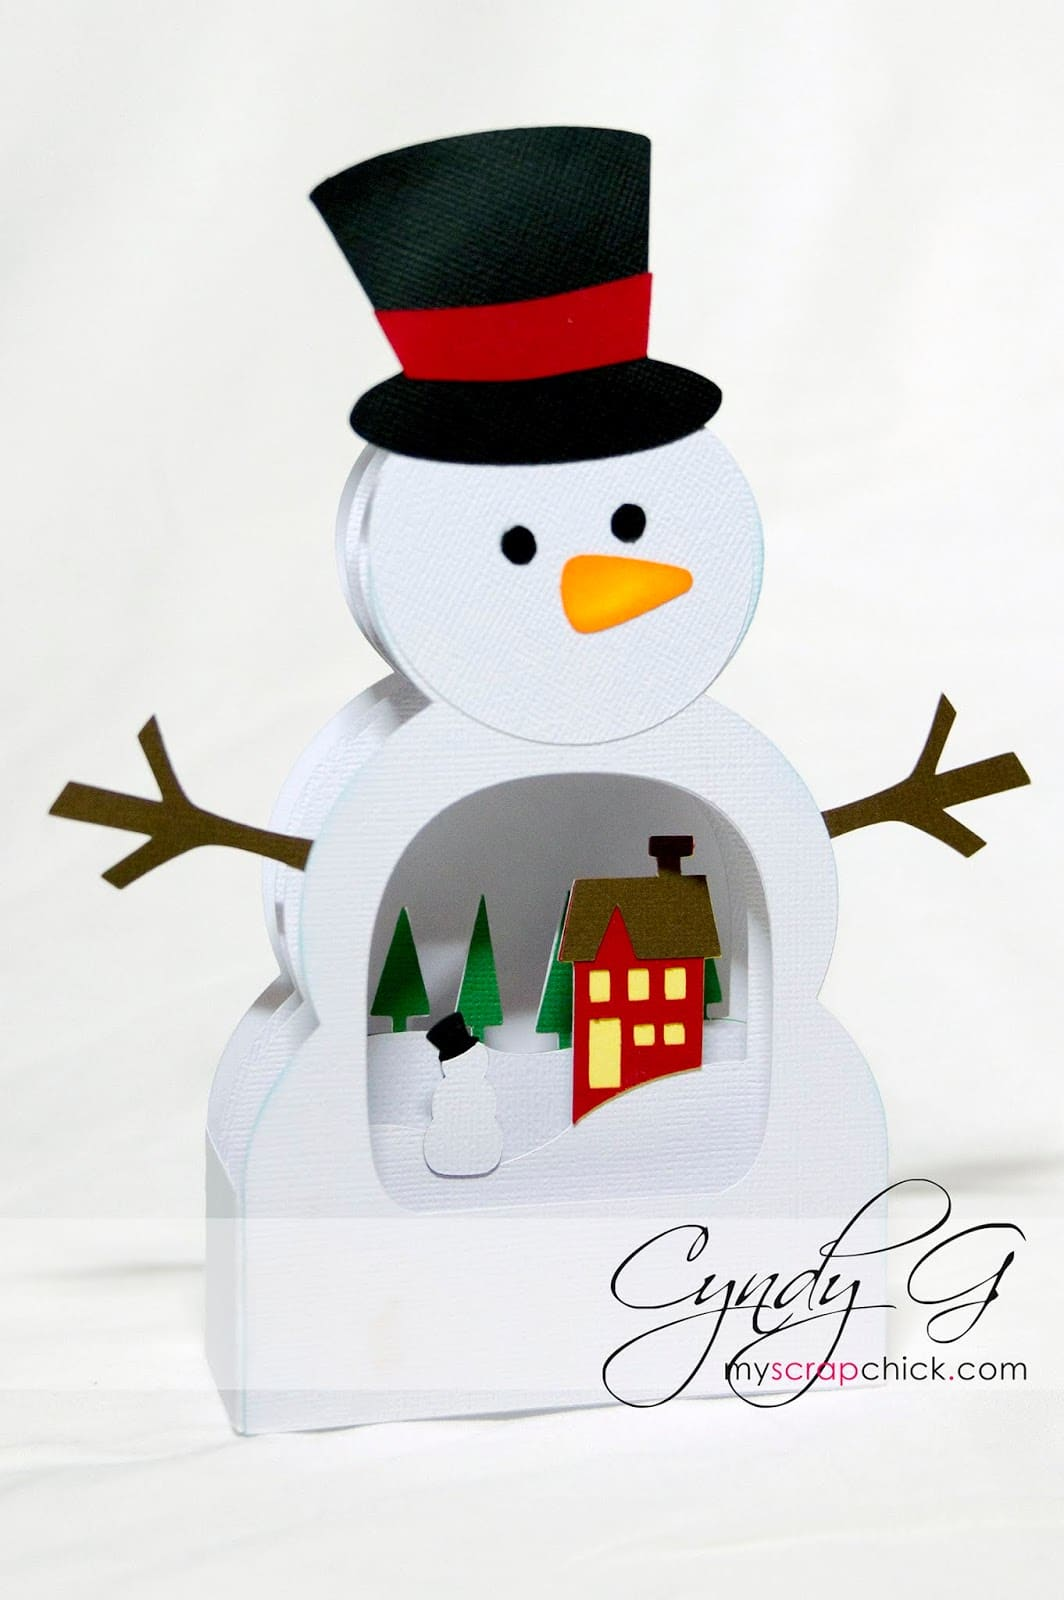 3d card shaped like a snowman with a wintry scene inside